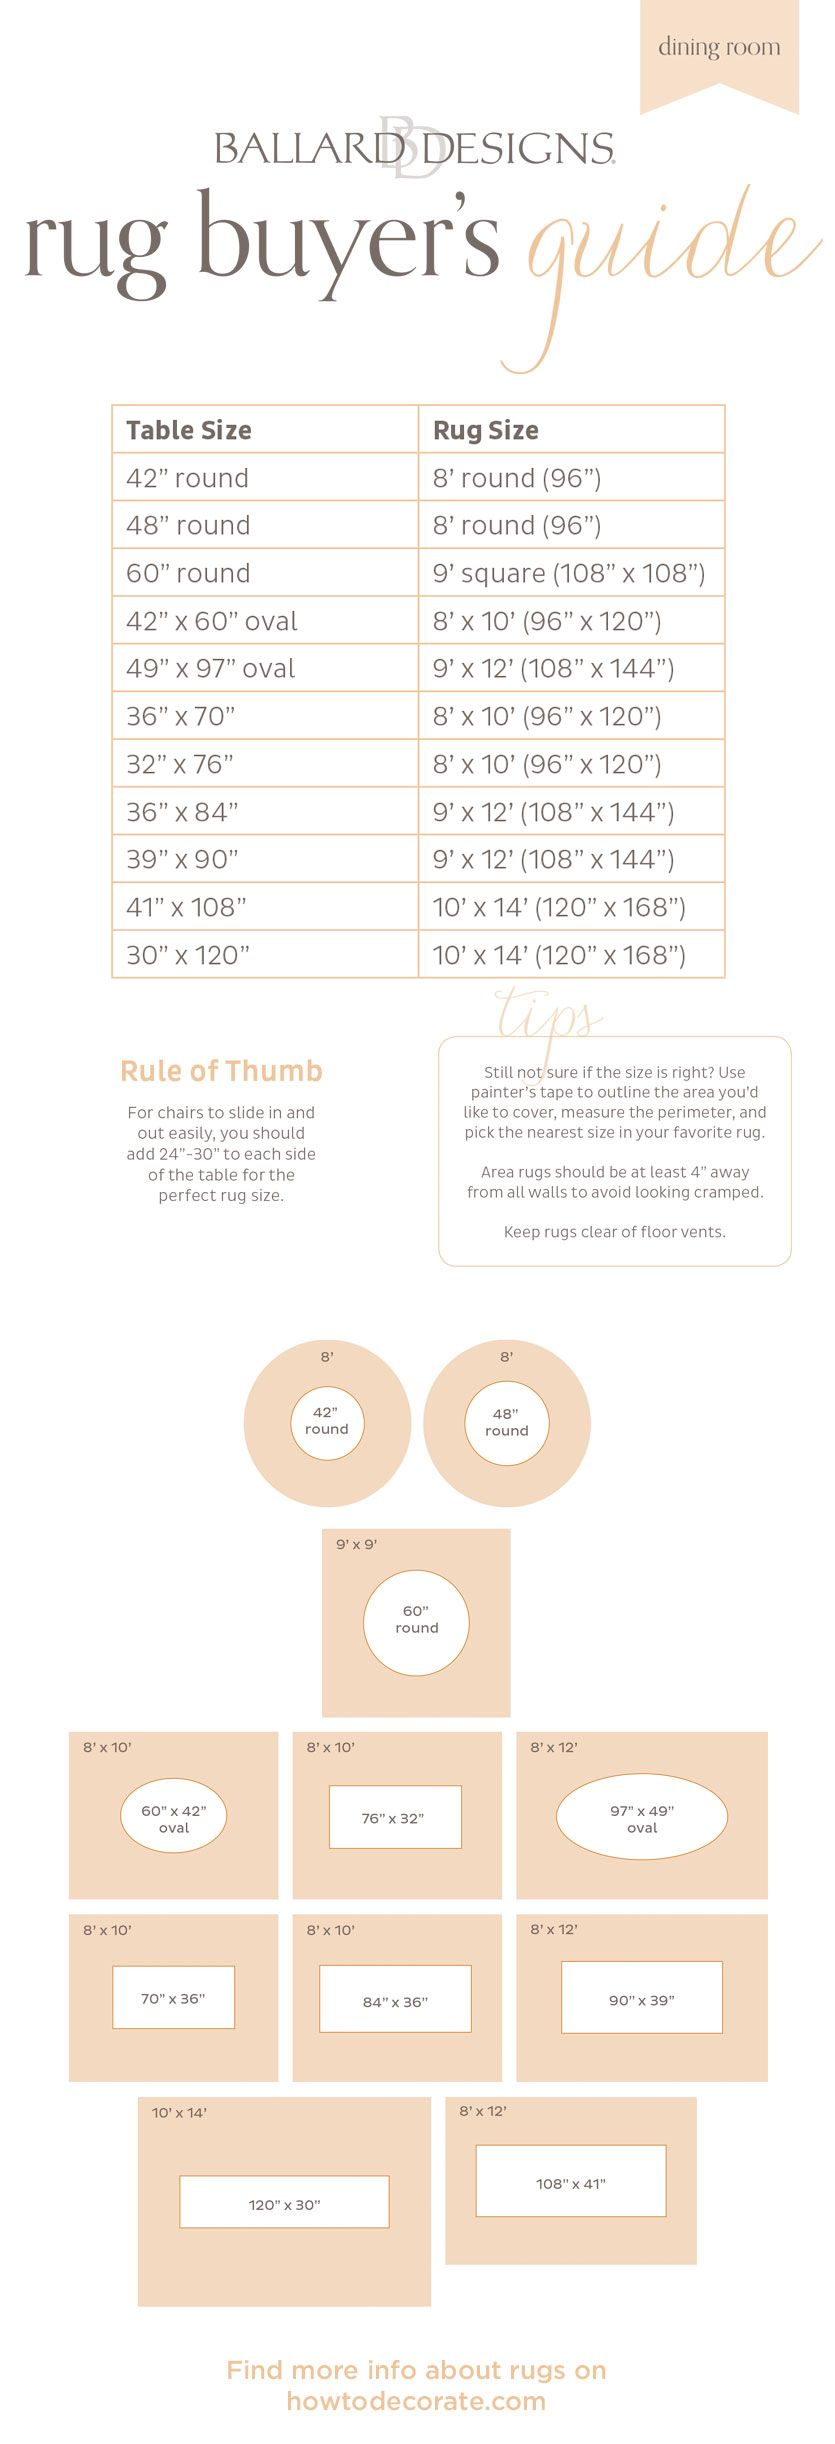 Guide To Choosing A Rug Size Dining Room Rug Rugs In Living Room Rug Size Guide